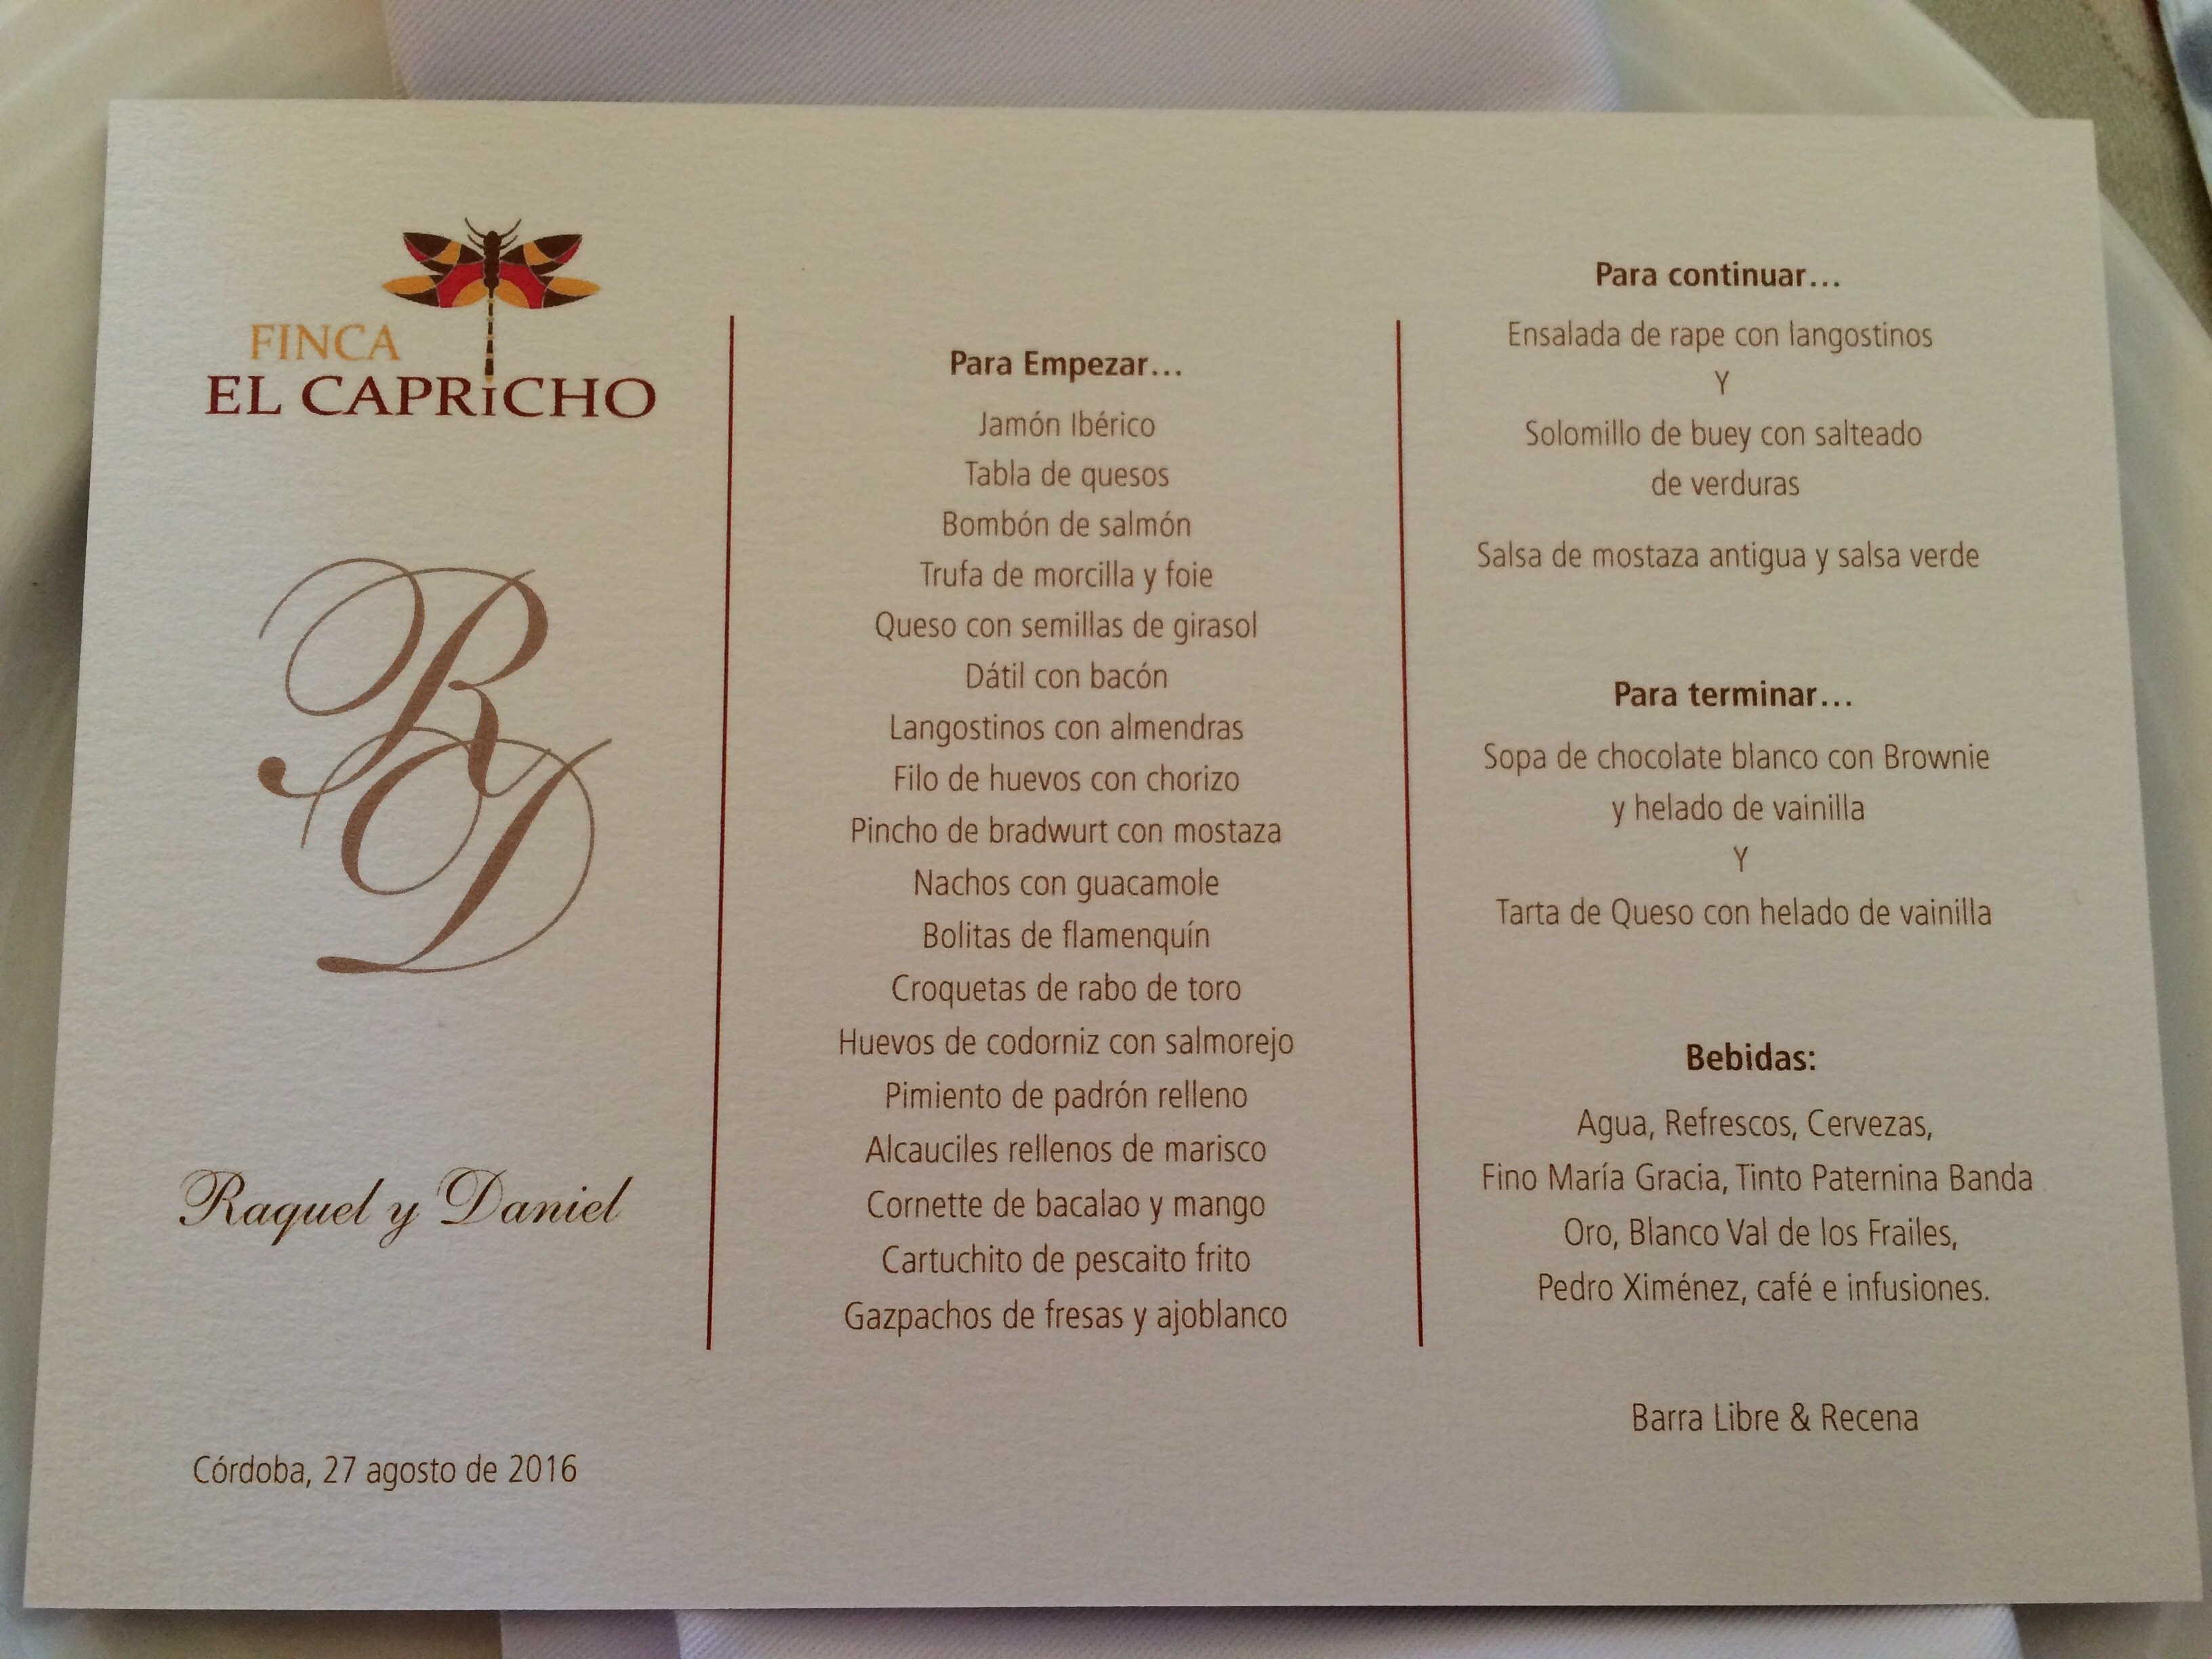 menu at a wedding in Spain